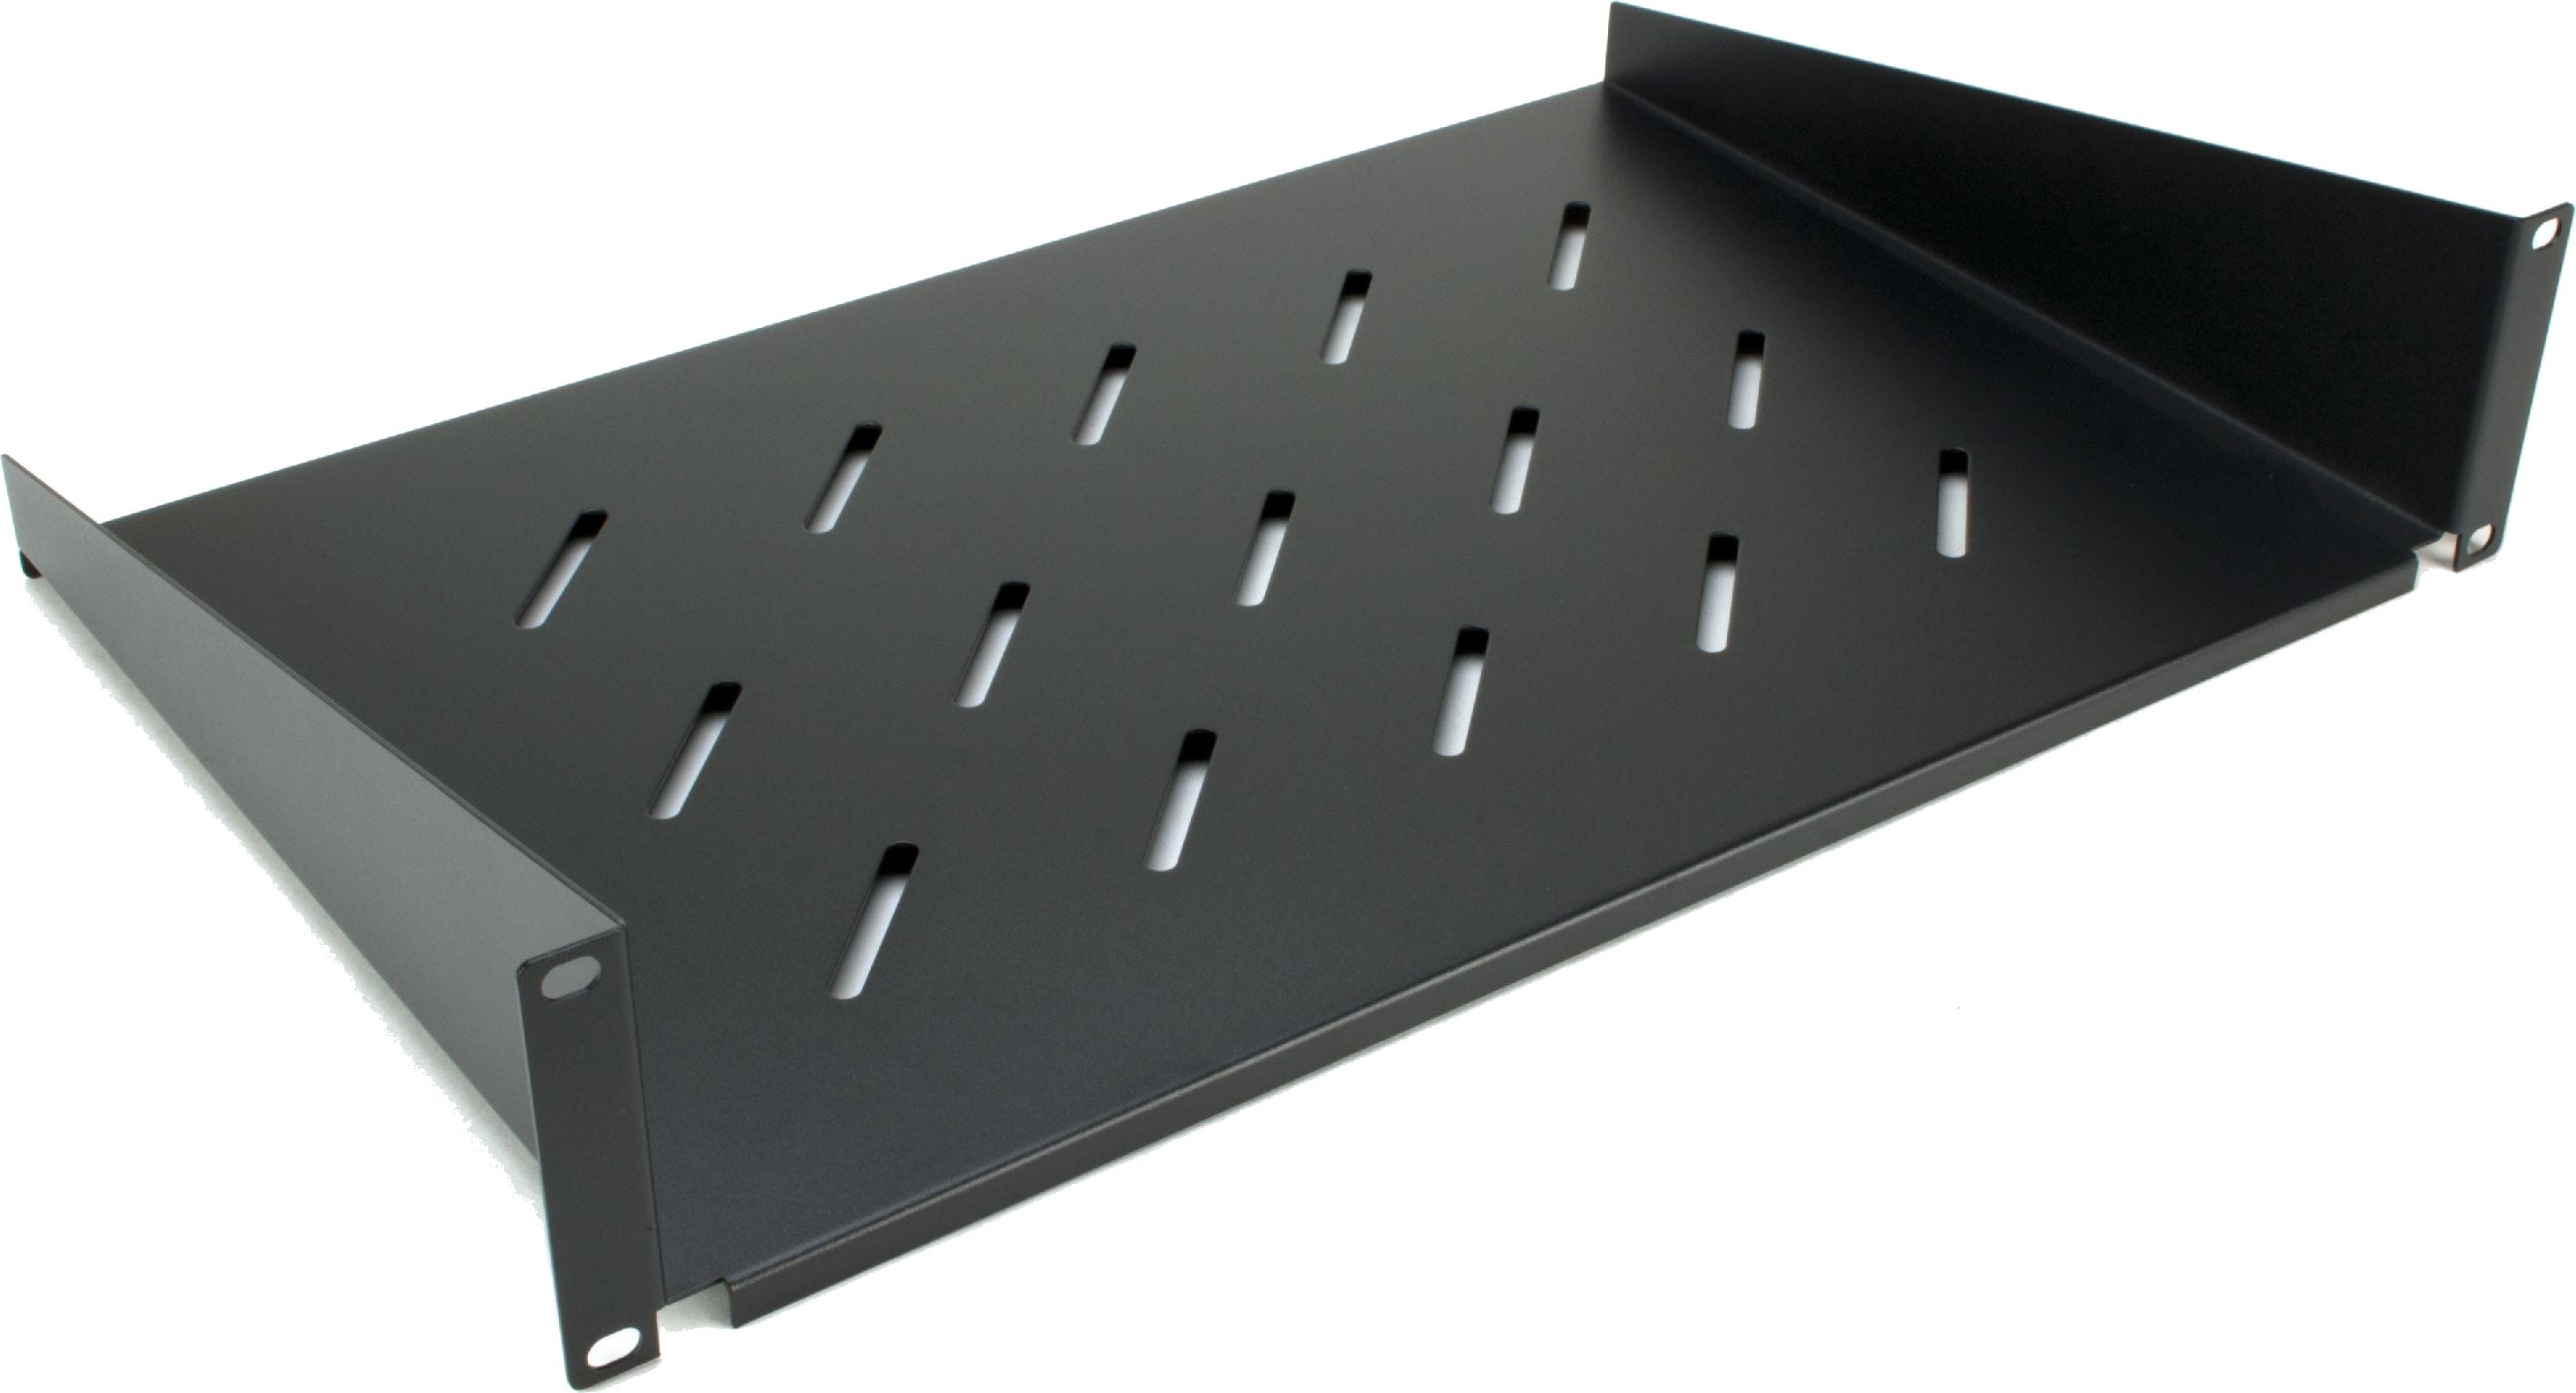 07-6307-30 2U Universal Rack Mount Shelf - 30cm